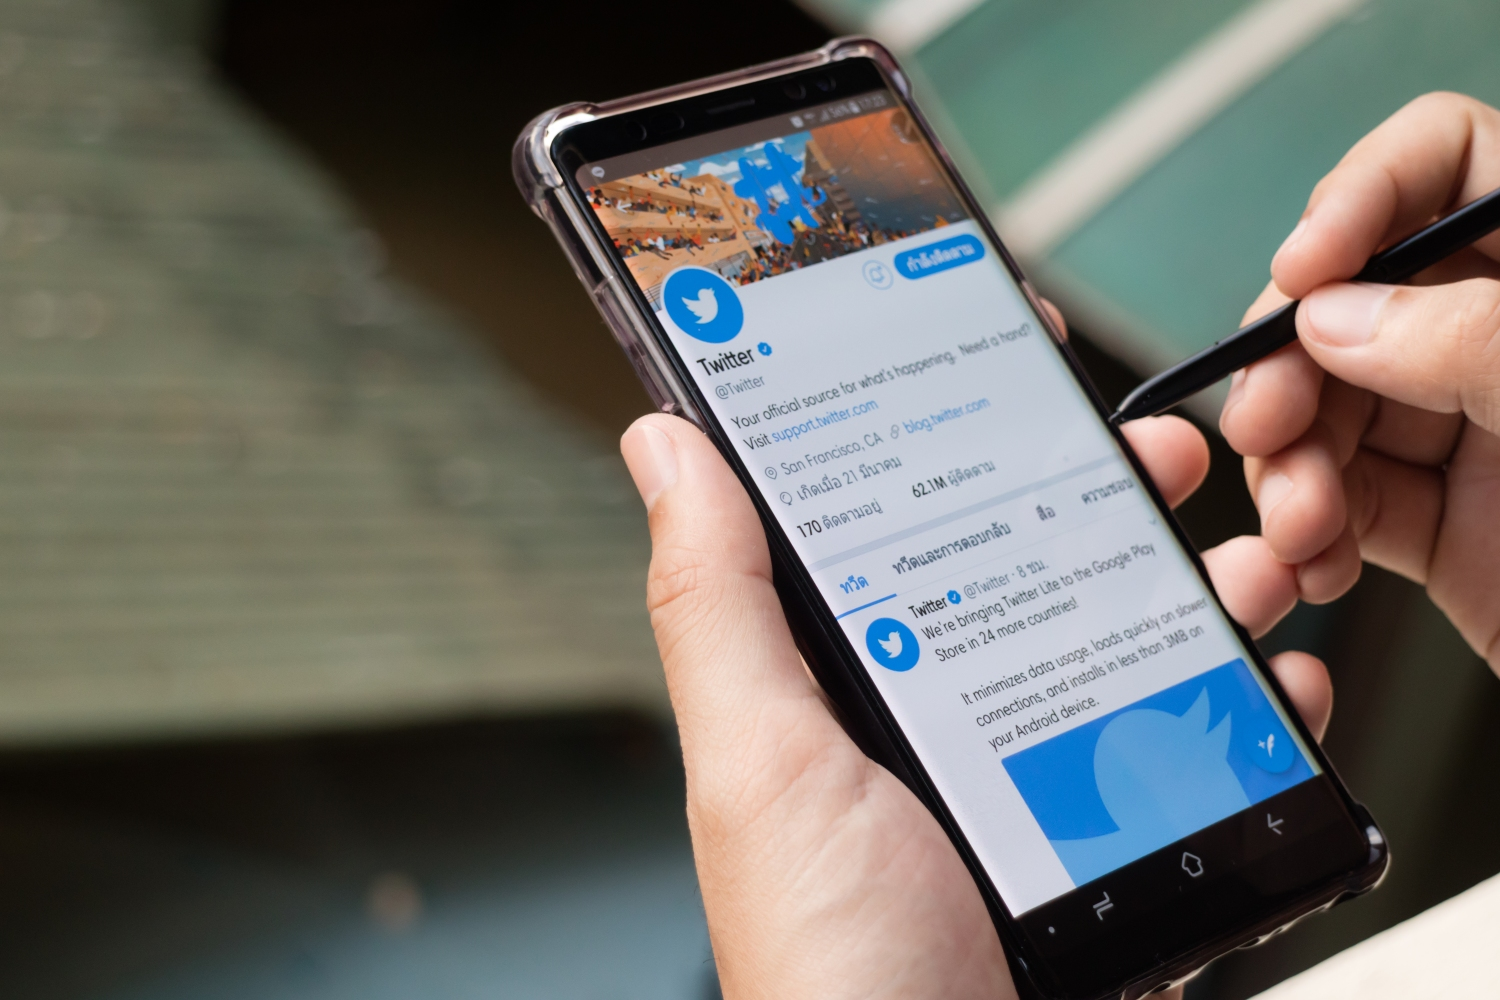 Twitter is experimenting with Android users to promote informed discussion